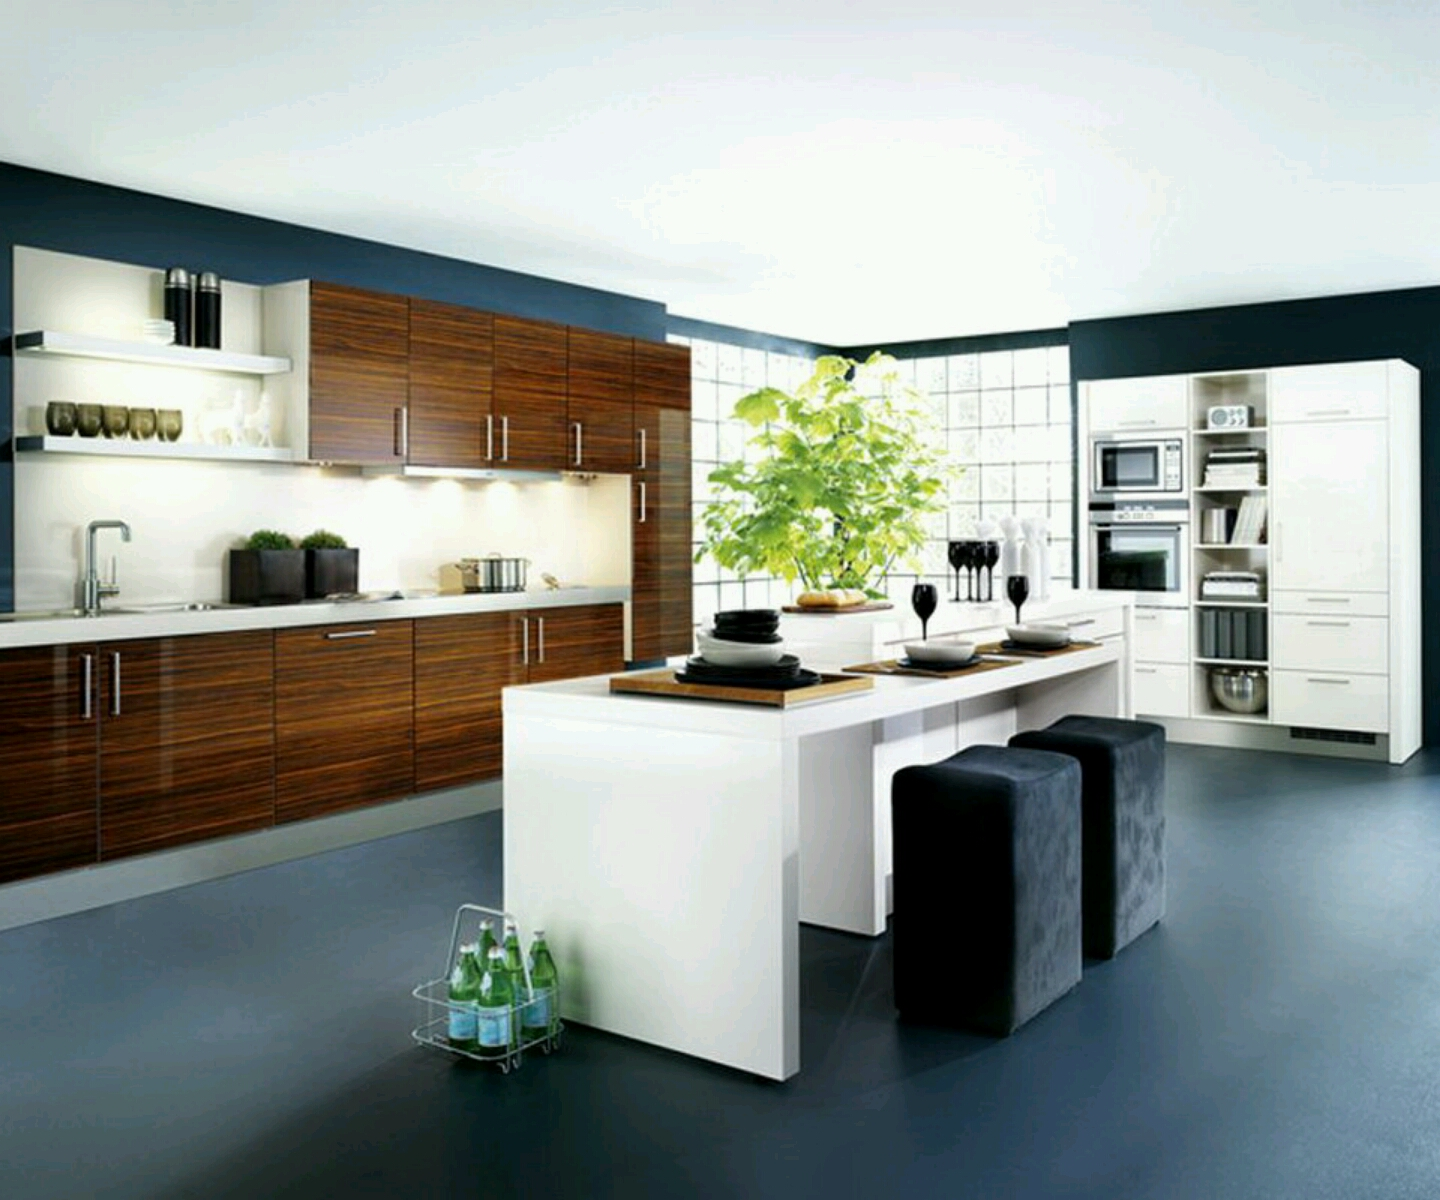 New home designs latest kitchen cabinets designs modern for Pics of modern kitchen designs